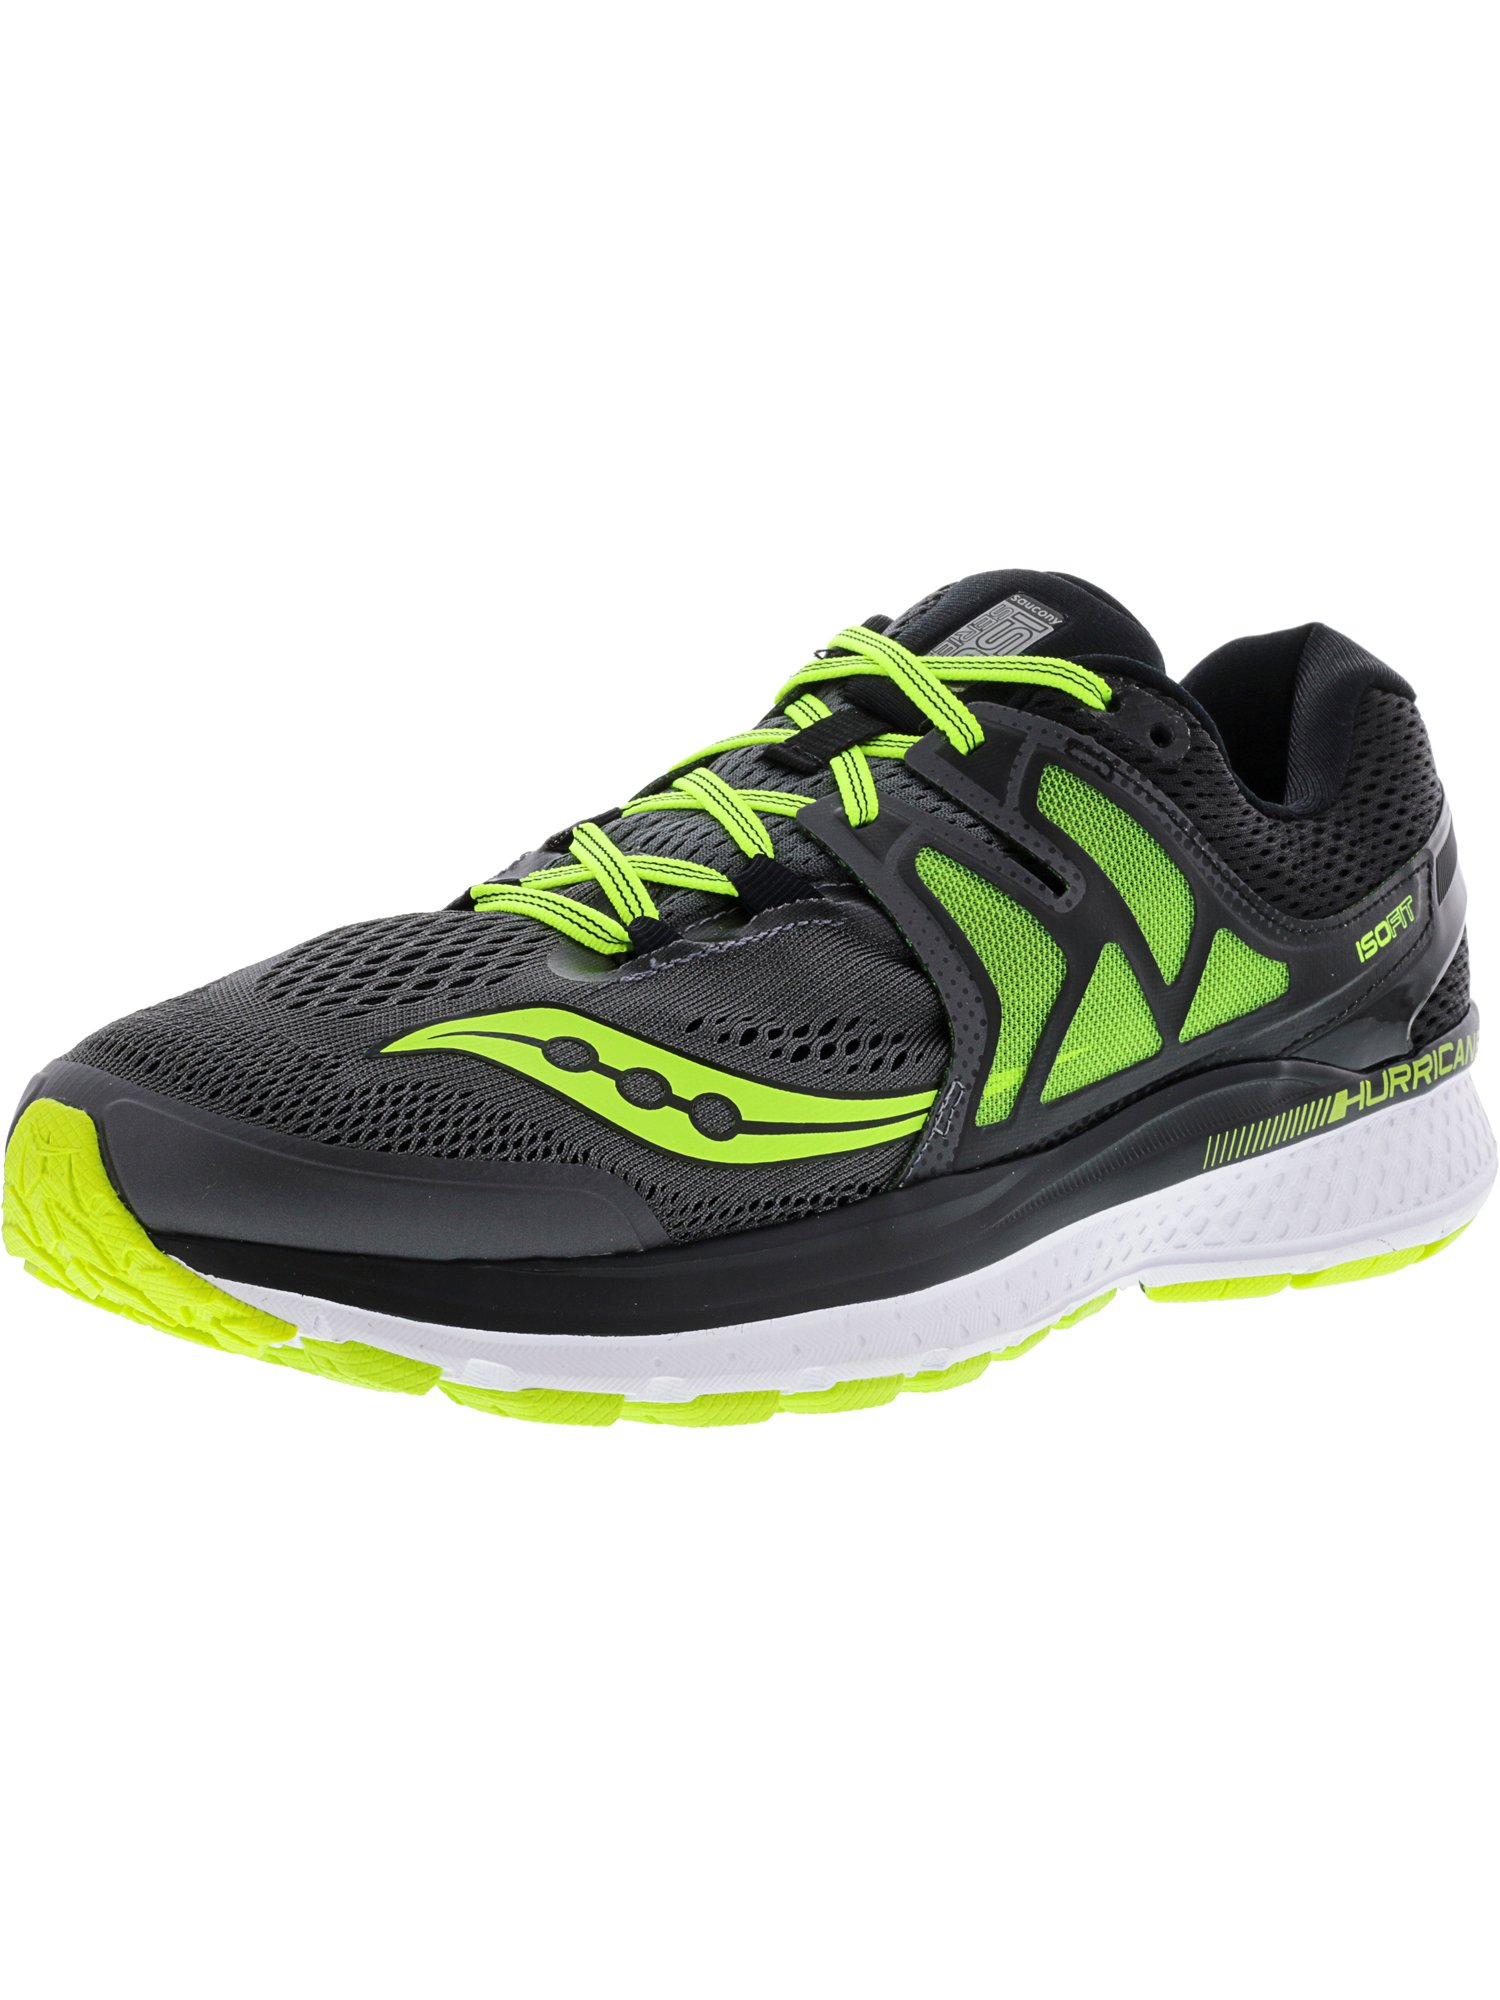 Saucony Men's Hurricane Iso 3 Grey   Black Cotton Ankle-High Running Shoe 10W by Saucony